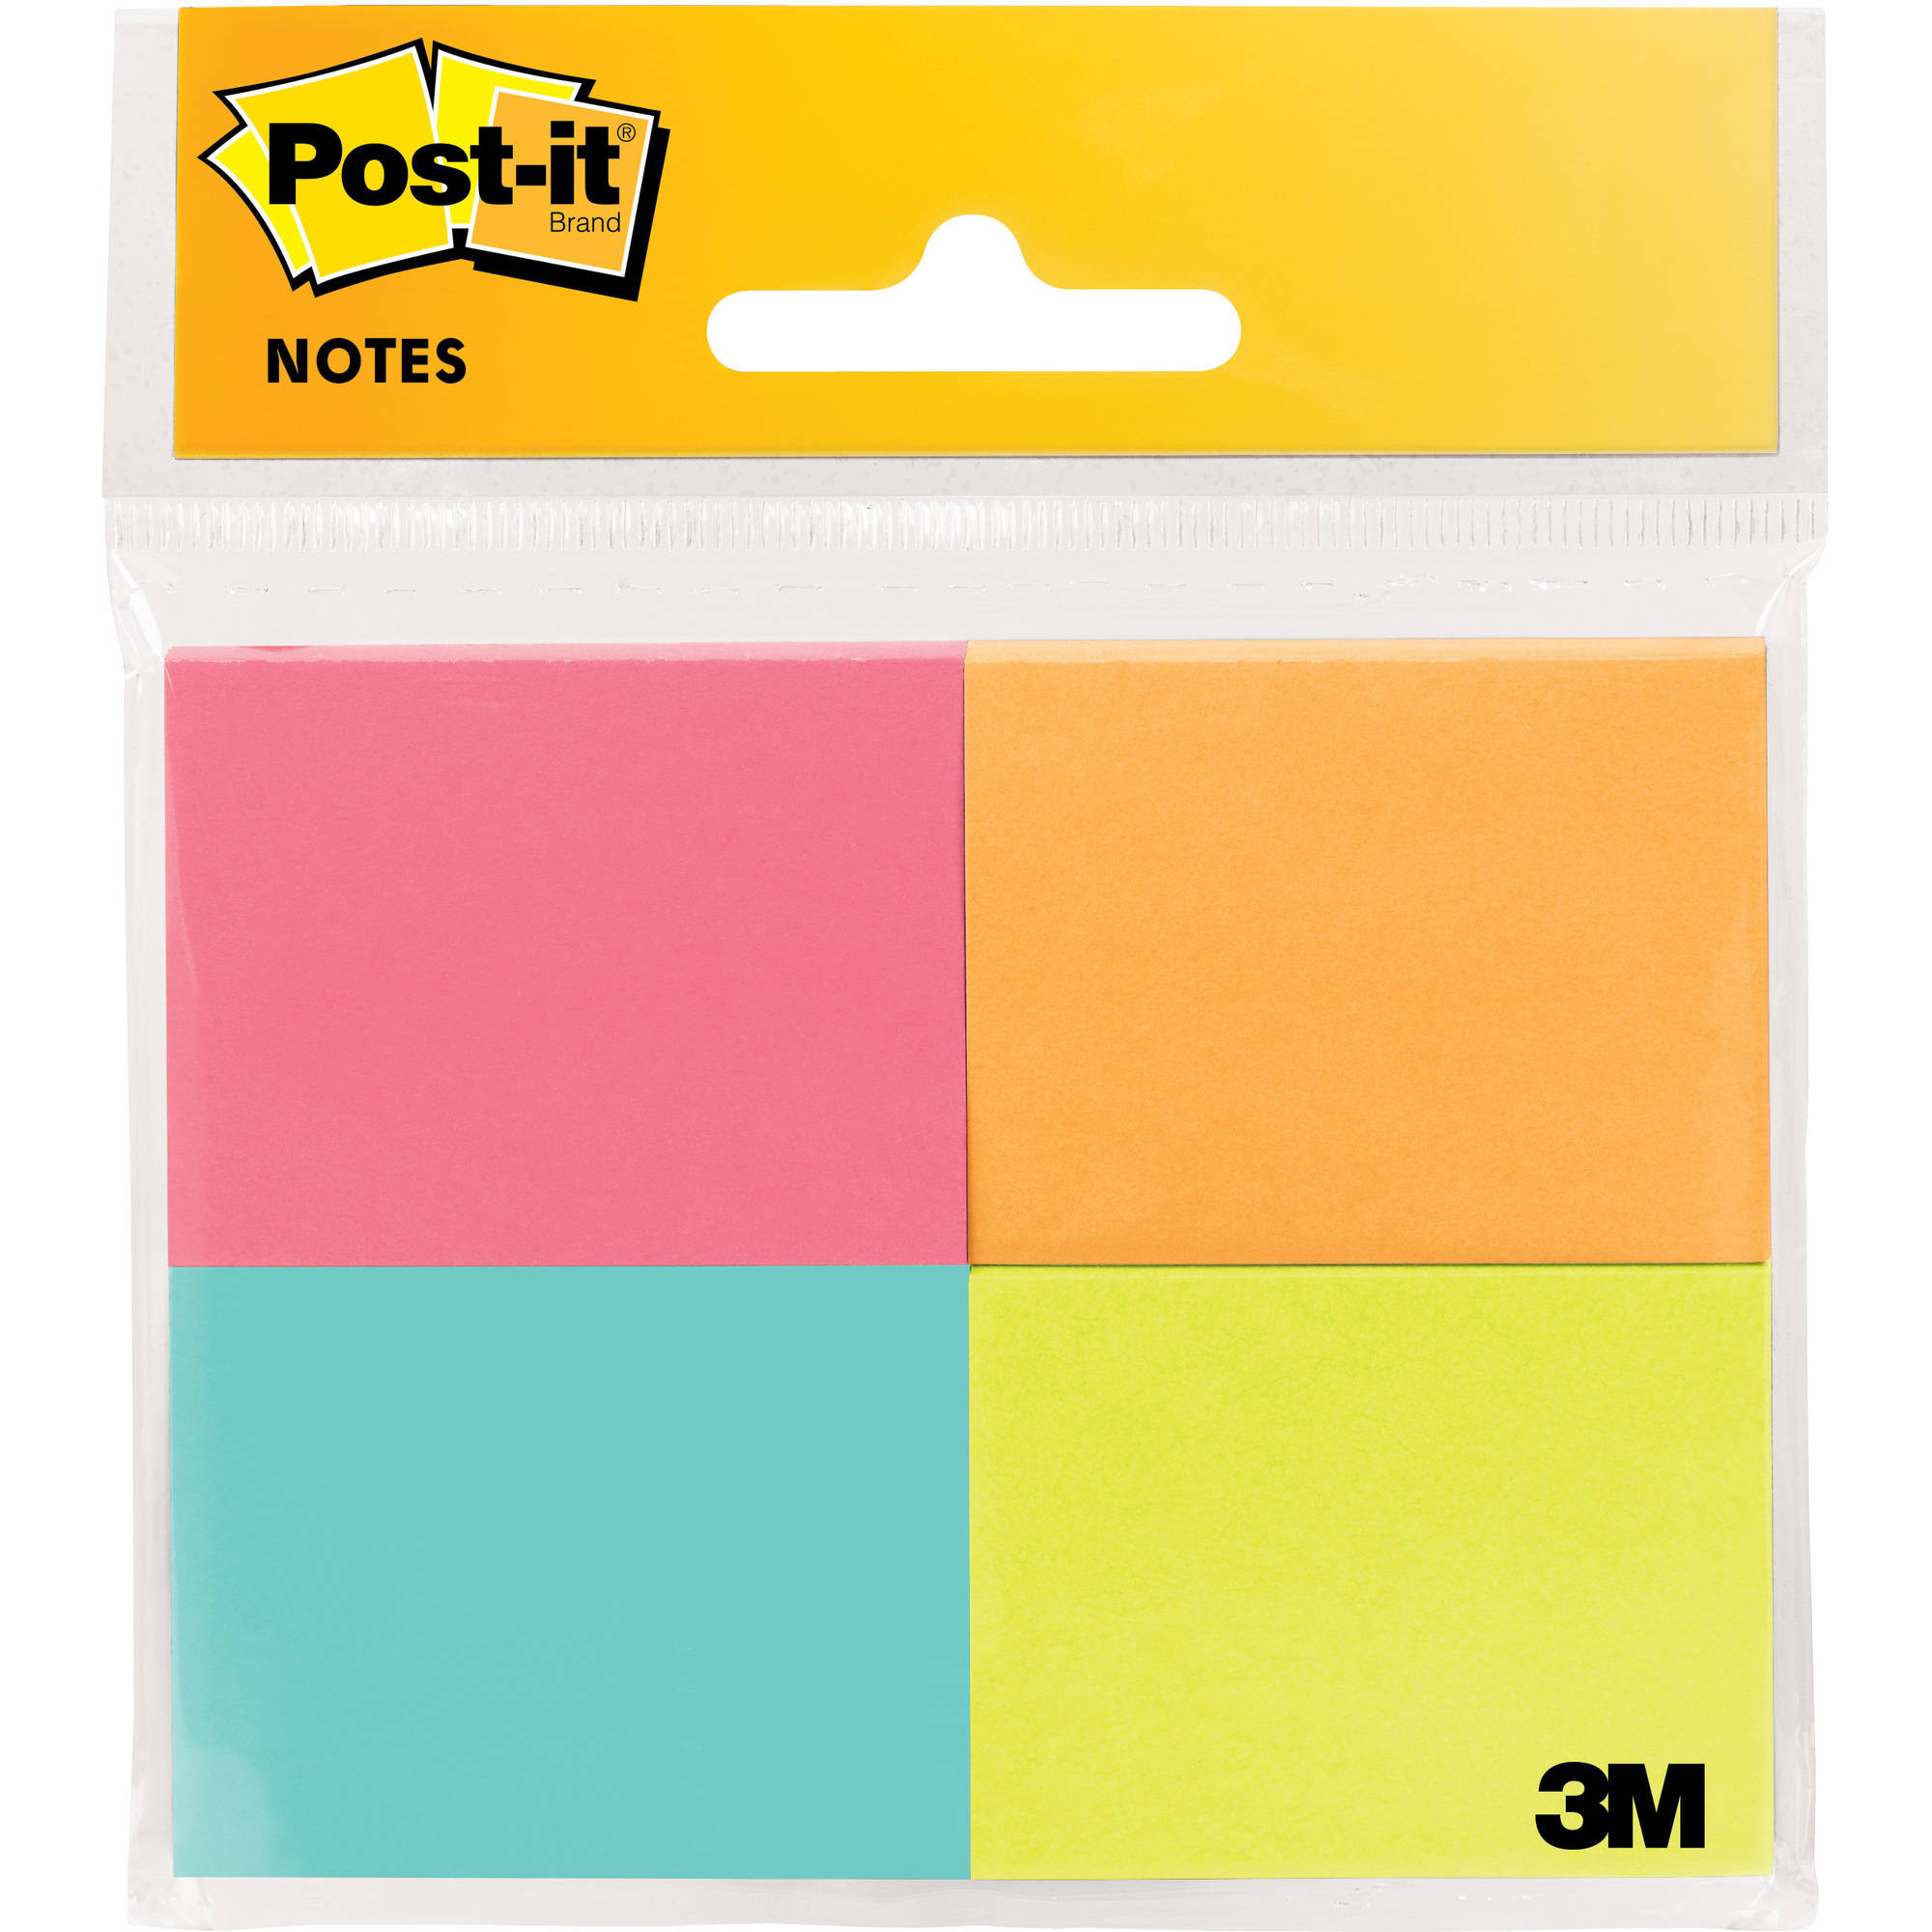 Post-it Original Notes 4 Pack, 1.5in. x 2in., Cape Town Collection